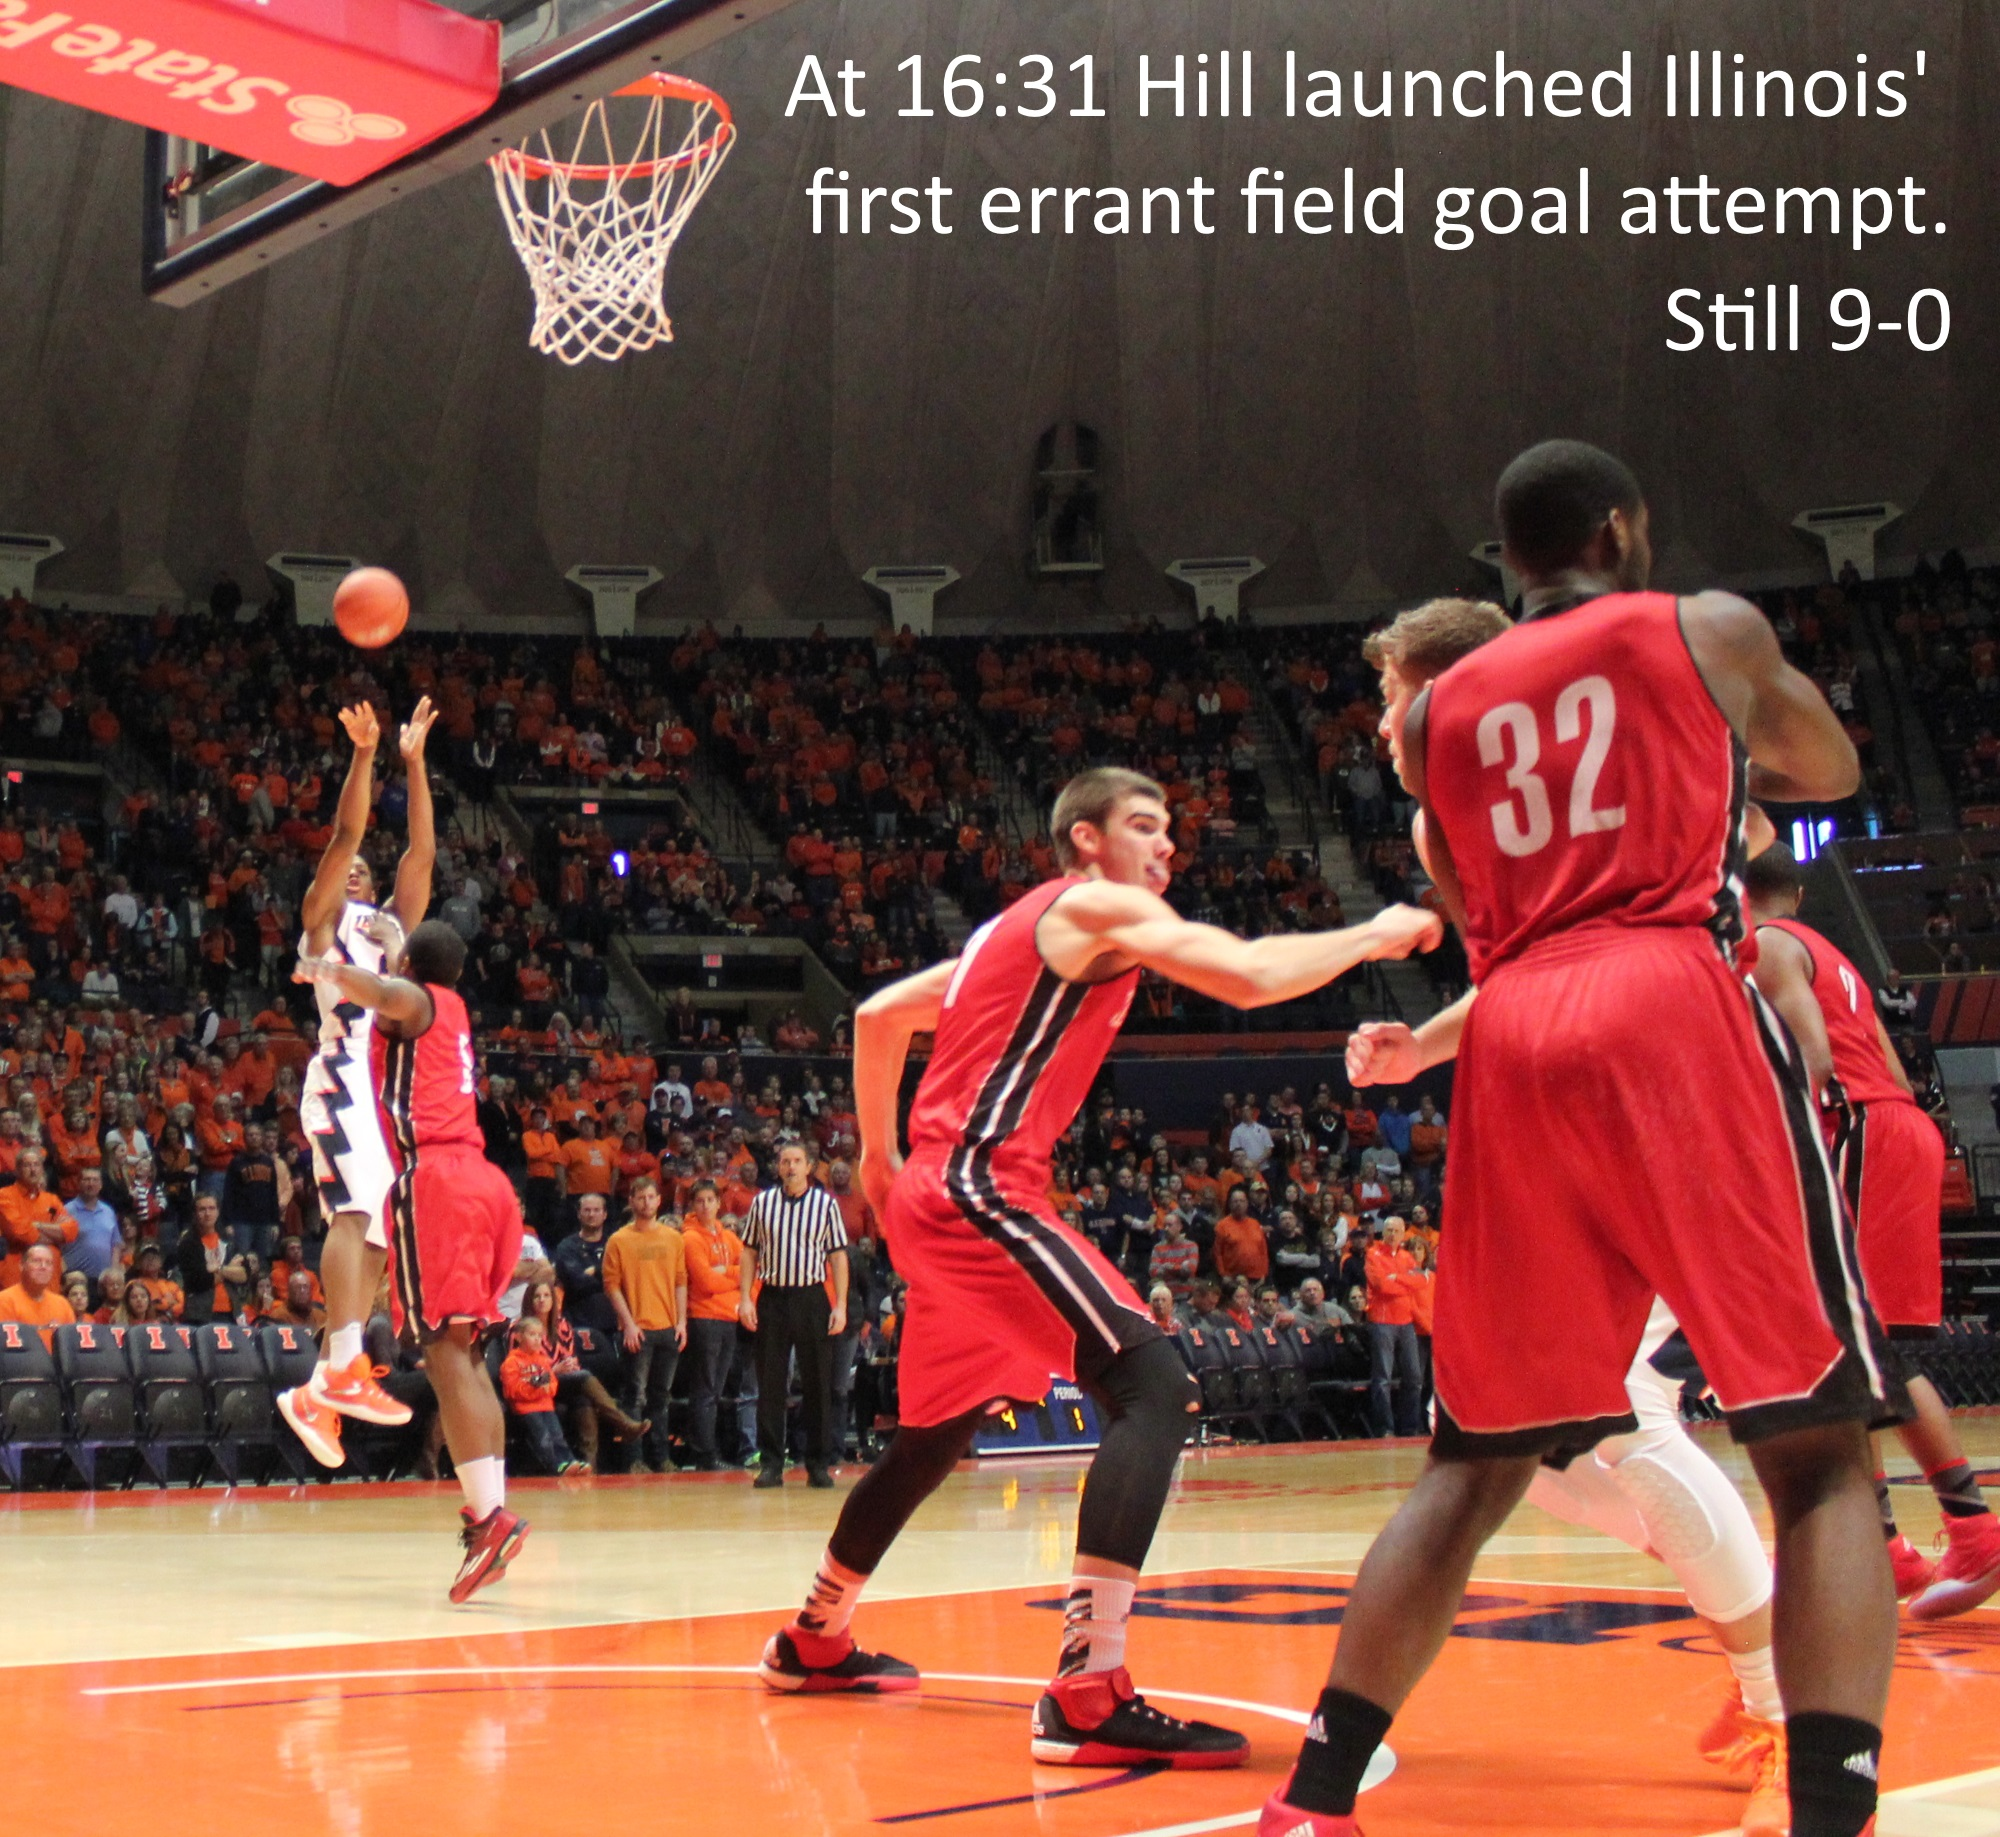 At 16-31 Hill launched Illinois' first errant field goal attempt - still 9-0